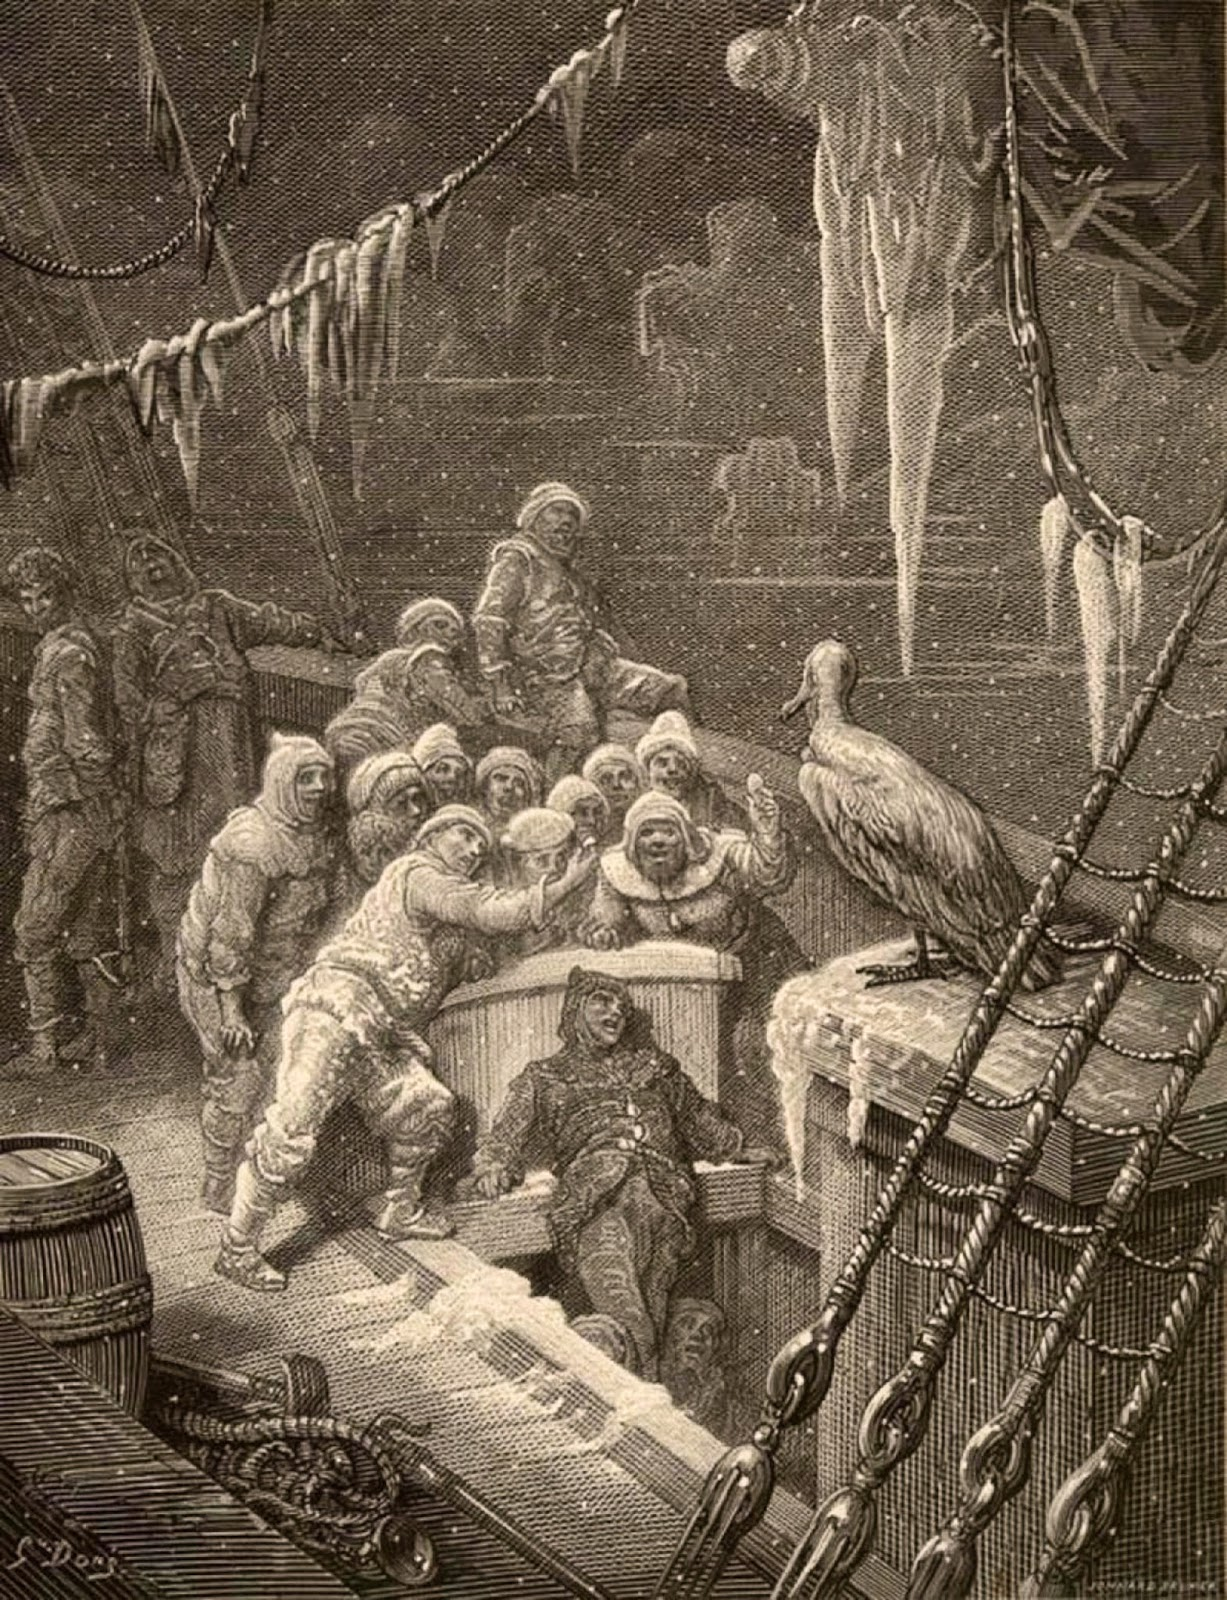 the rime of the ancient mariner essay rime of the ancient mariner  tellers of weird tales friend island being a veracious tale of an ancient mariness is cast